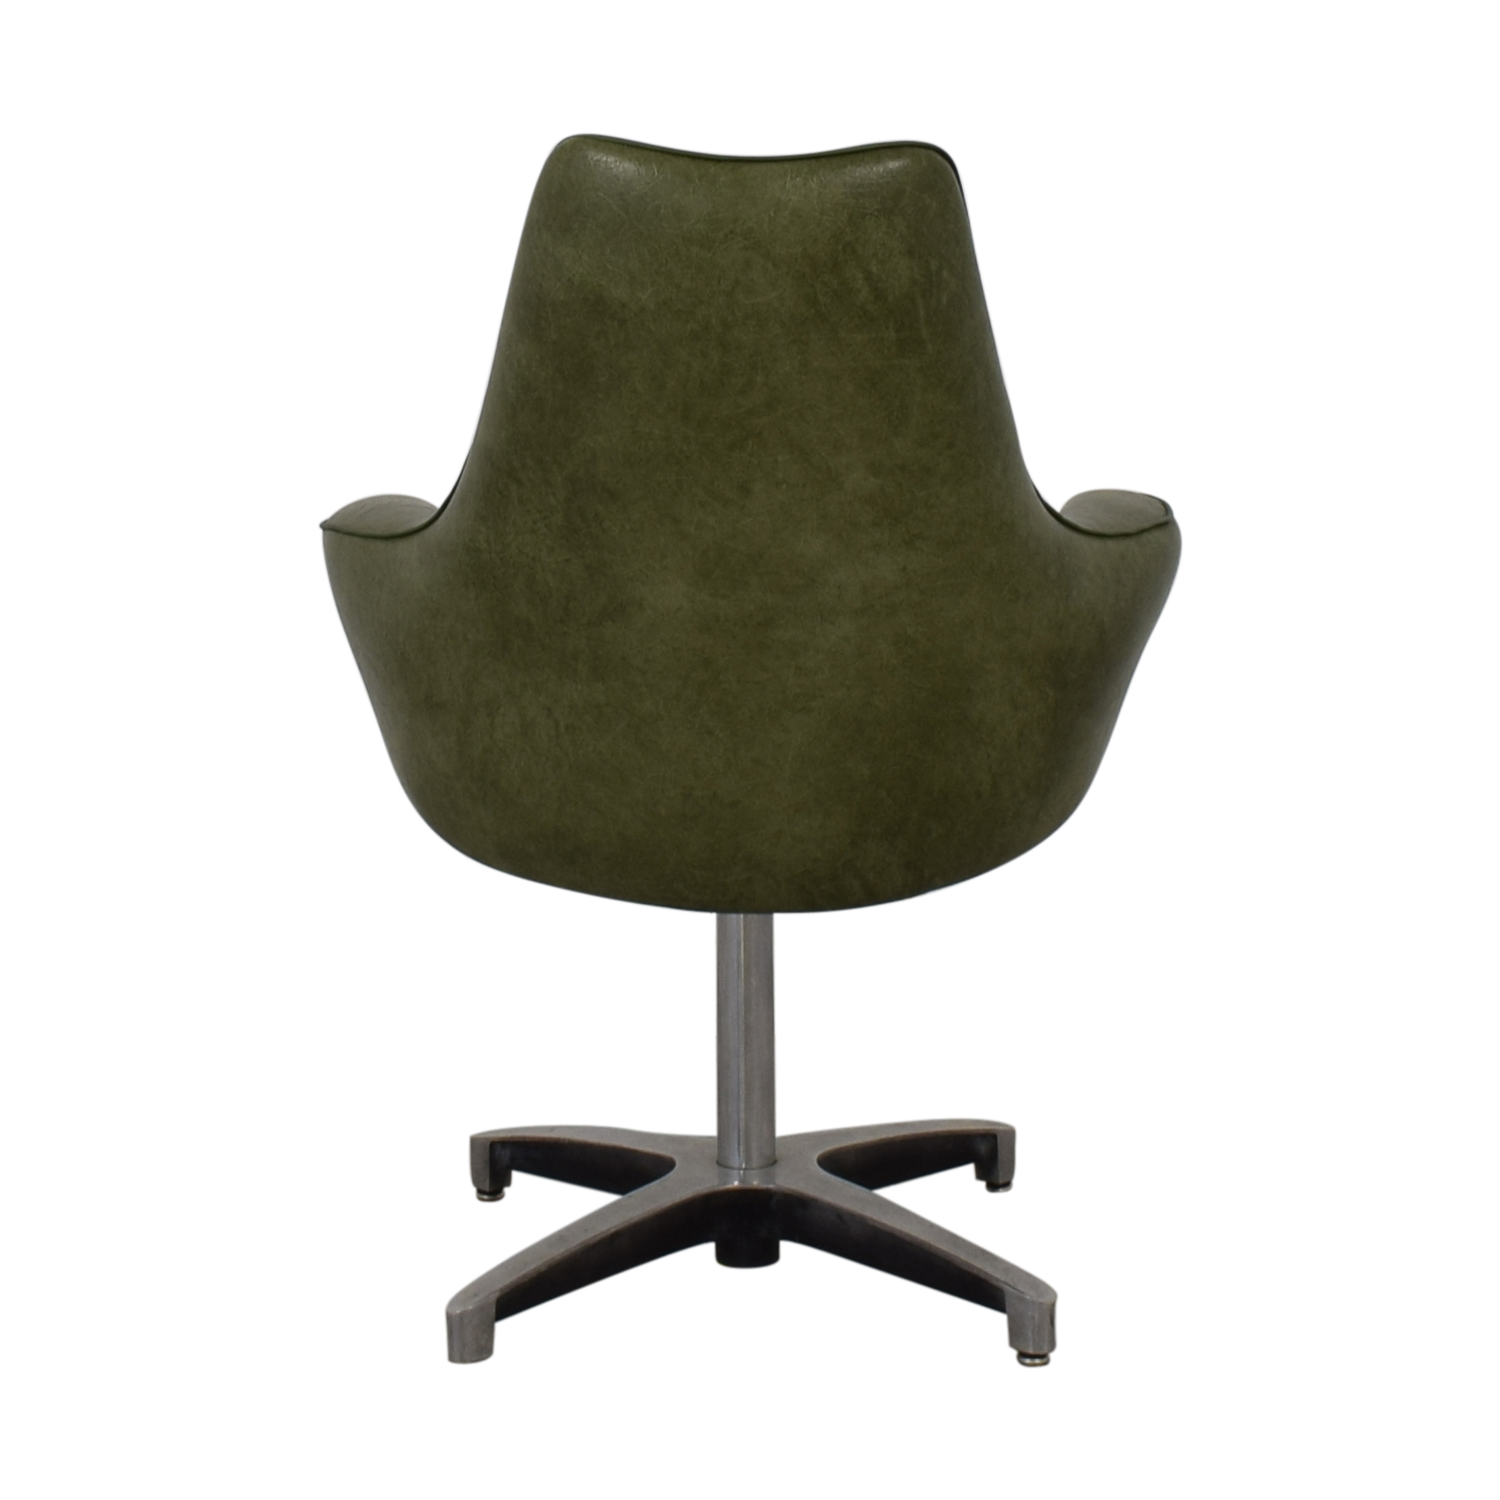 Spartan Chrome Furniture Spartan Chrome Furniture Green Leather Chair nyc